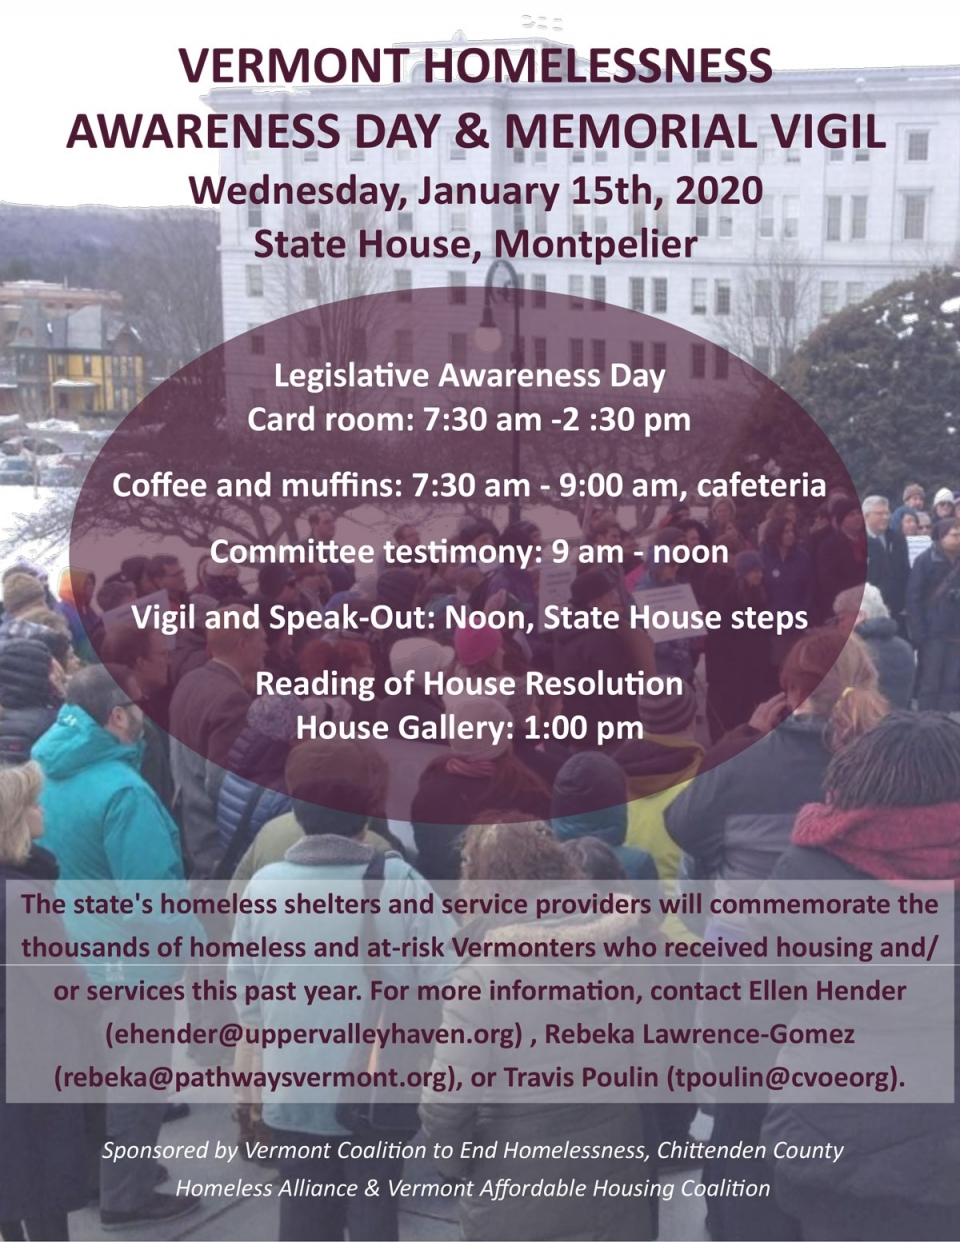 Homeless Awareness Day & Vigil